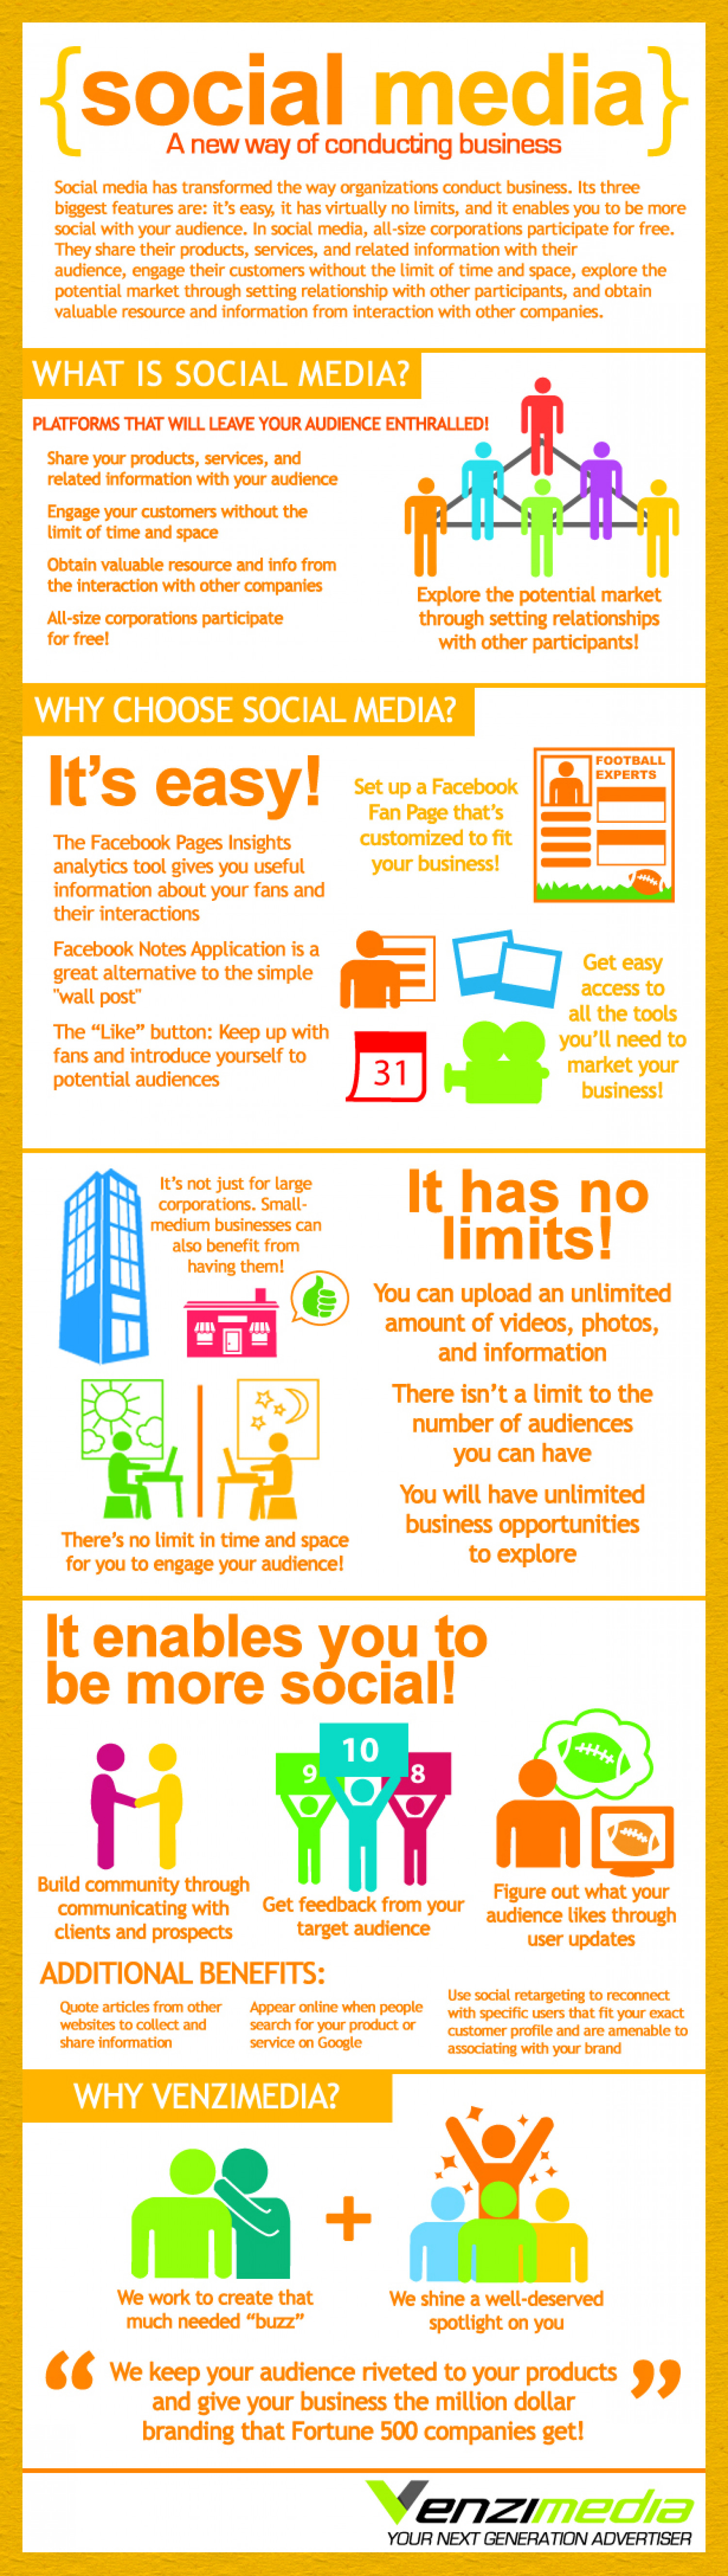 Social Media-New Way of Conducting Business Infographic